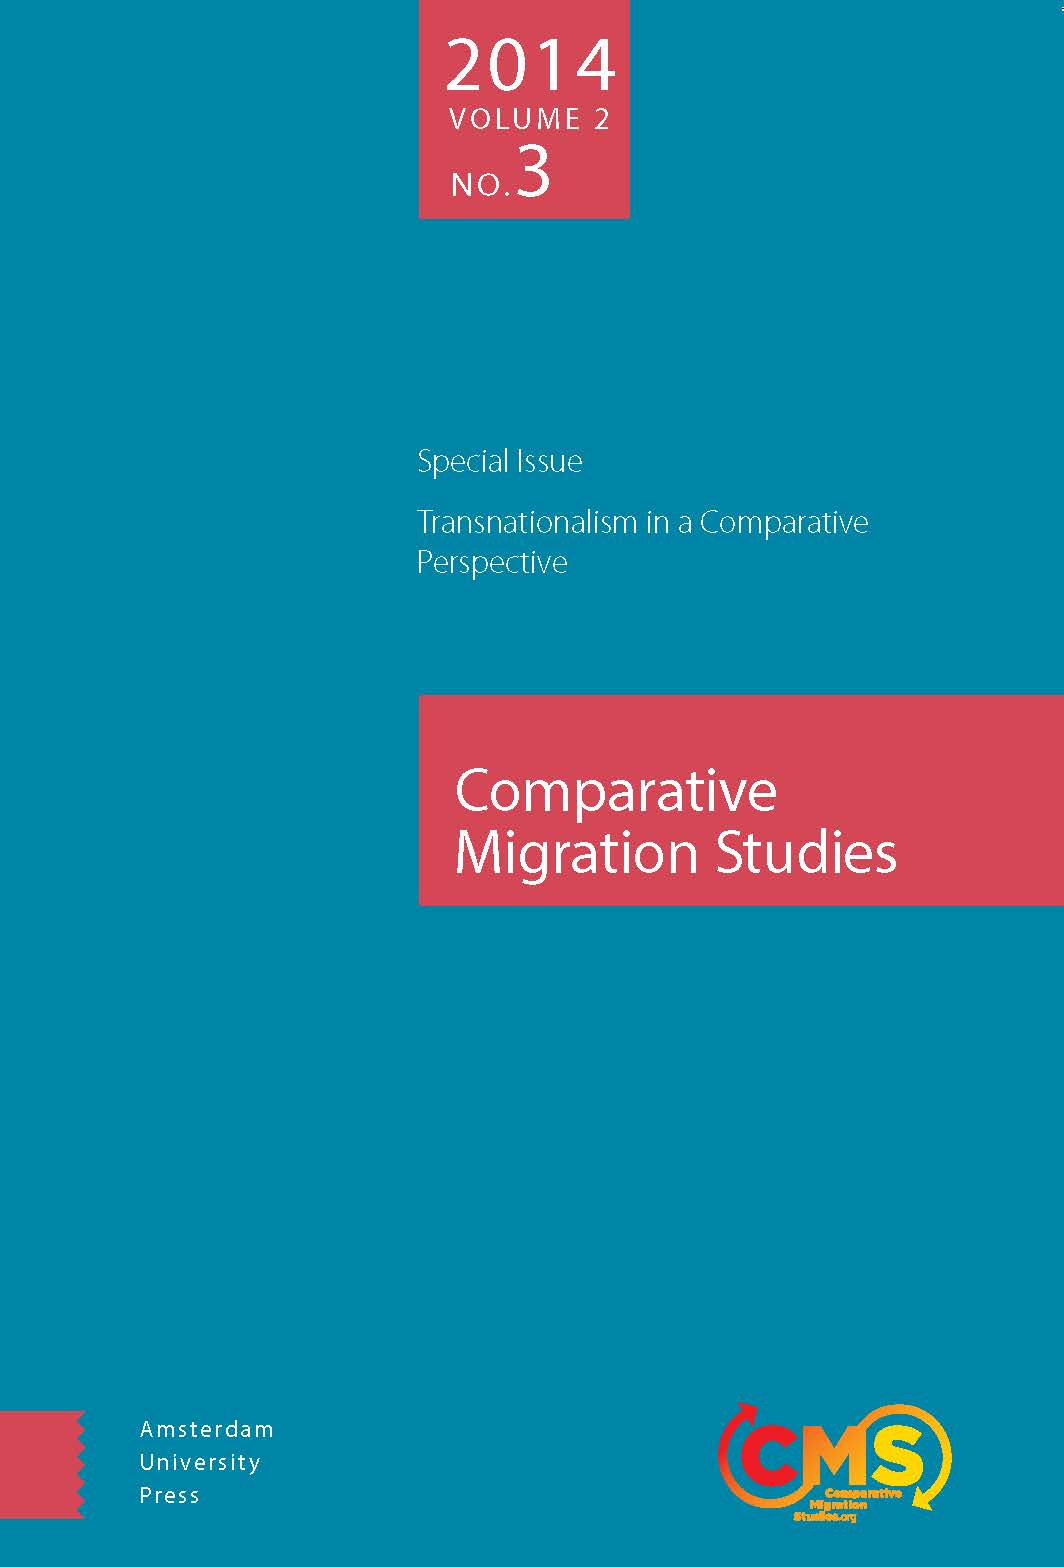 Cover of Comparative Migration Studies, Vol. 2, No. 3